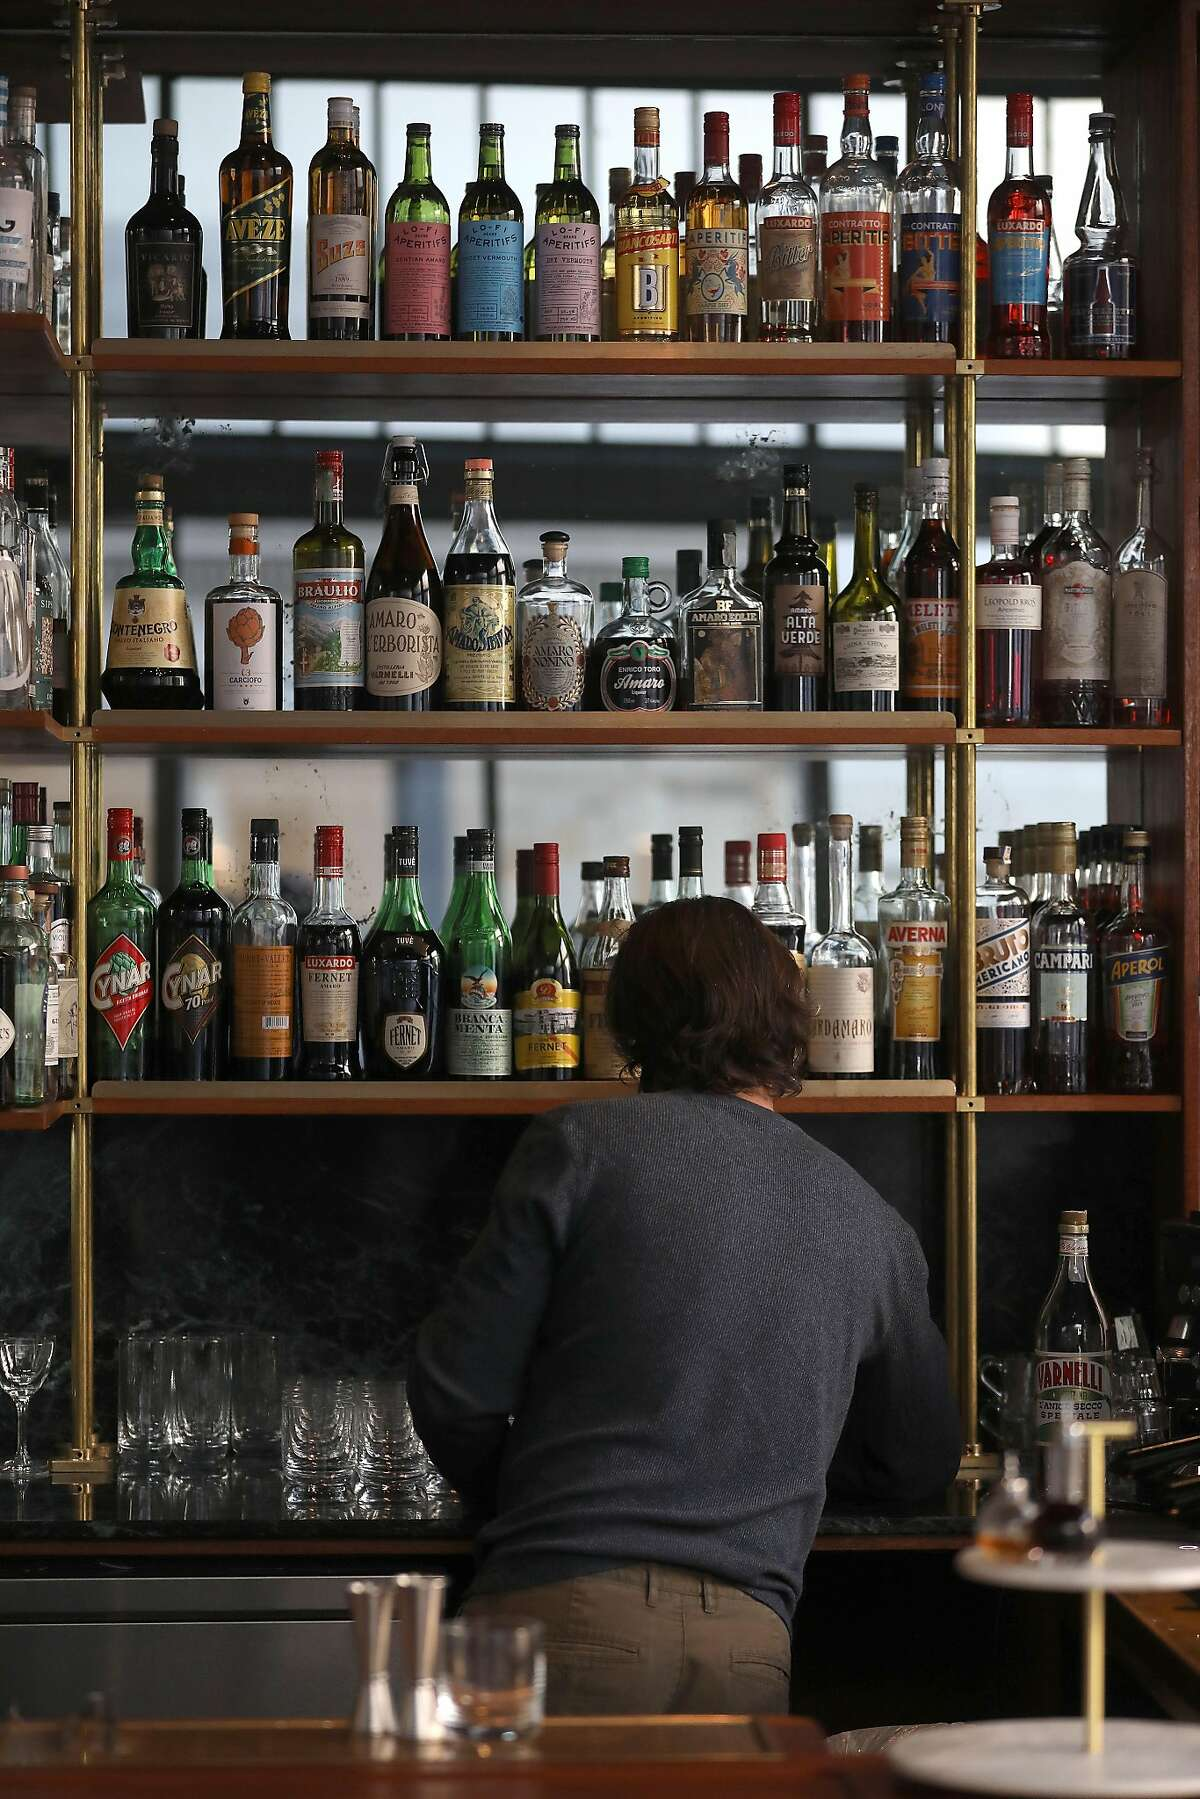 on Wednesday, Oct. 17, 2018 in San Francisco, Calif. This is for a Drink Up review of the Cordial. Please shoot: -Exterior of bar, especially the windows -back bar the Lo-Fi amari (which they use pretty heavily) -Greg Lindgren & Jon Gasparini, owners -Thistle spritz (make sure they do the rosemary garnish) -Zucchero cocktail -Cardamom spritz -Action shots of patrons -Action shots of bartender making drinks -Anything else that looks interesting What's Happening at this time: